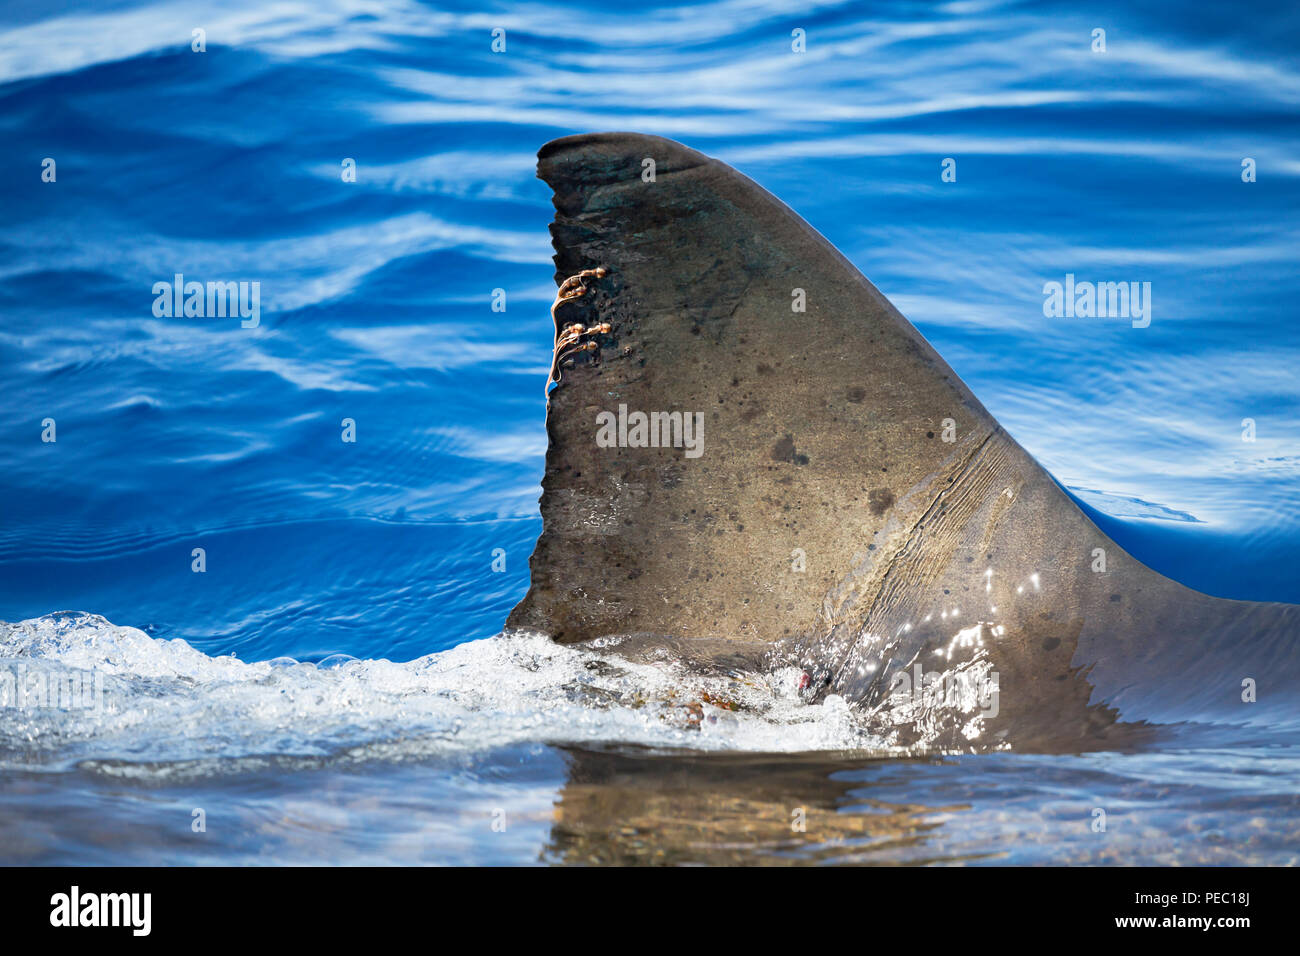 The strings hanging off the dorsal fin of this great white shark, Carcharodon carcharias, are parasitic copepods.  Photographed just breaking the surf - Stock Image